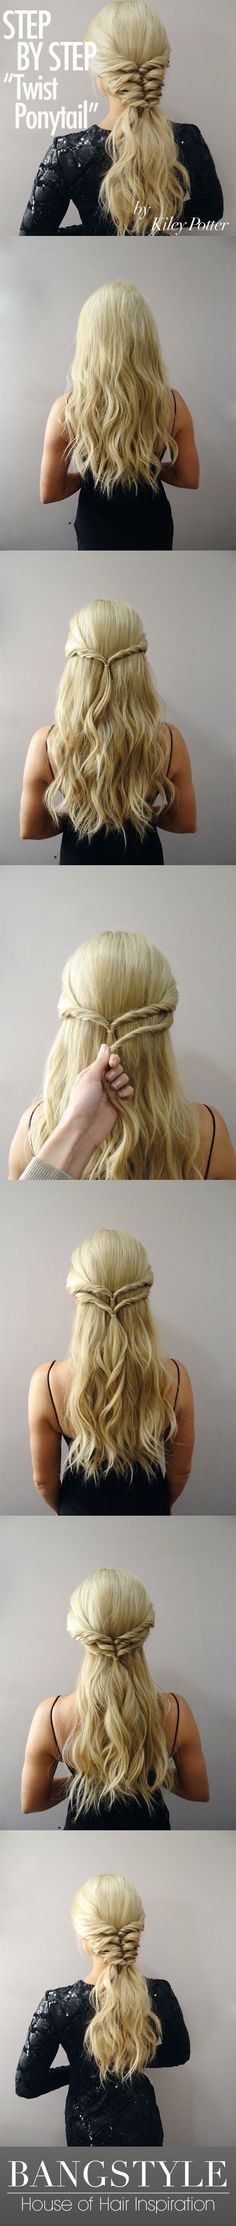 Can't decide between a pony tail and a braid? Bring both together in perfection with this Bangstyle tutorial!